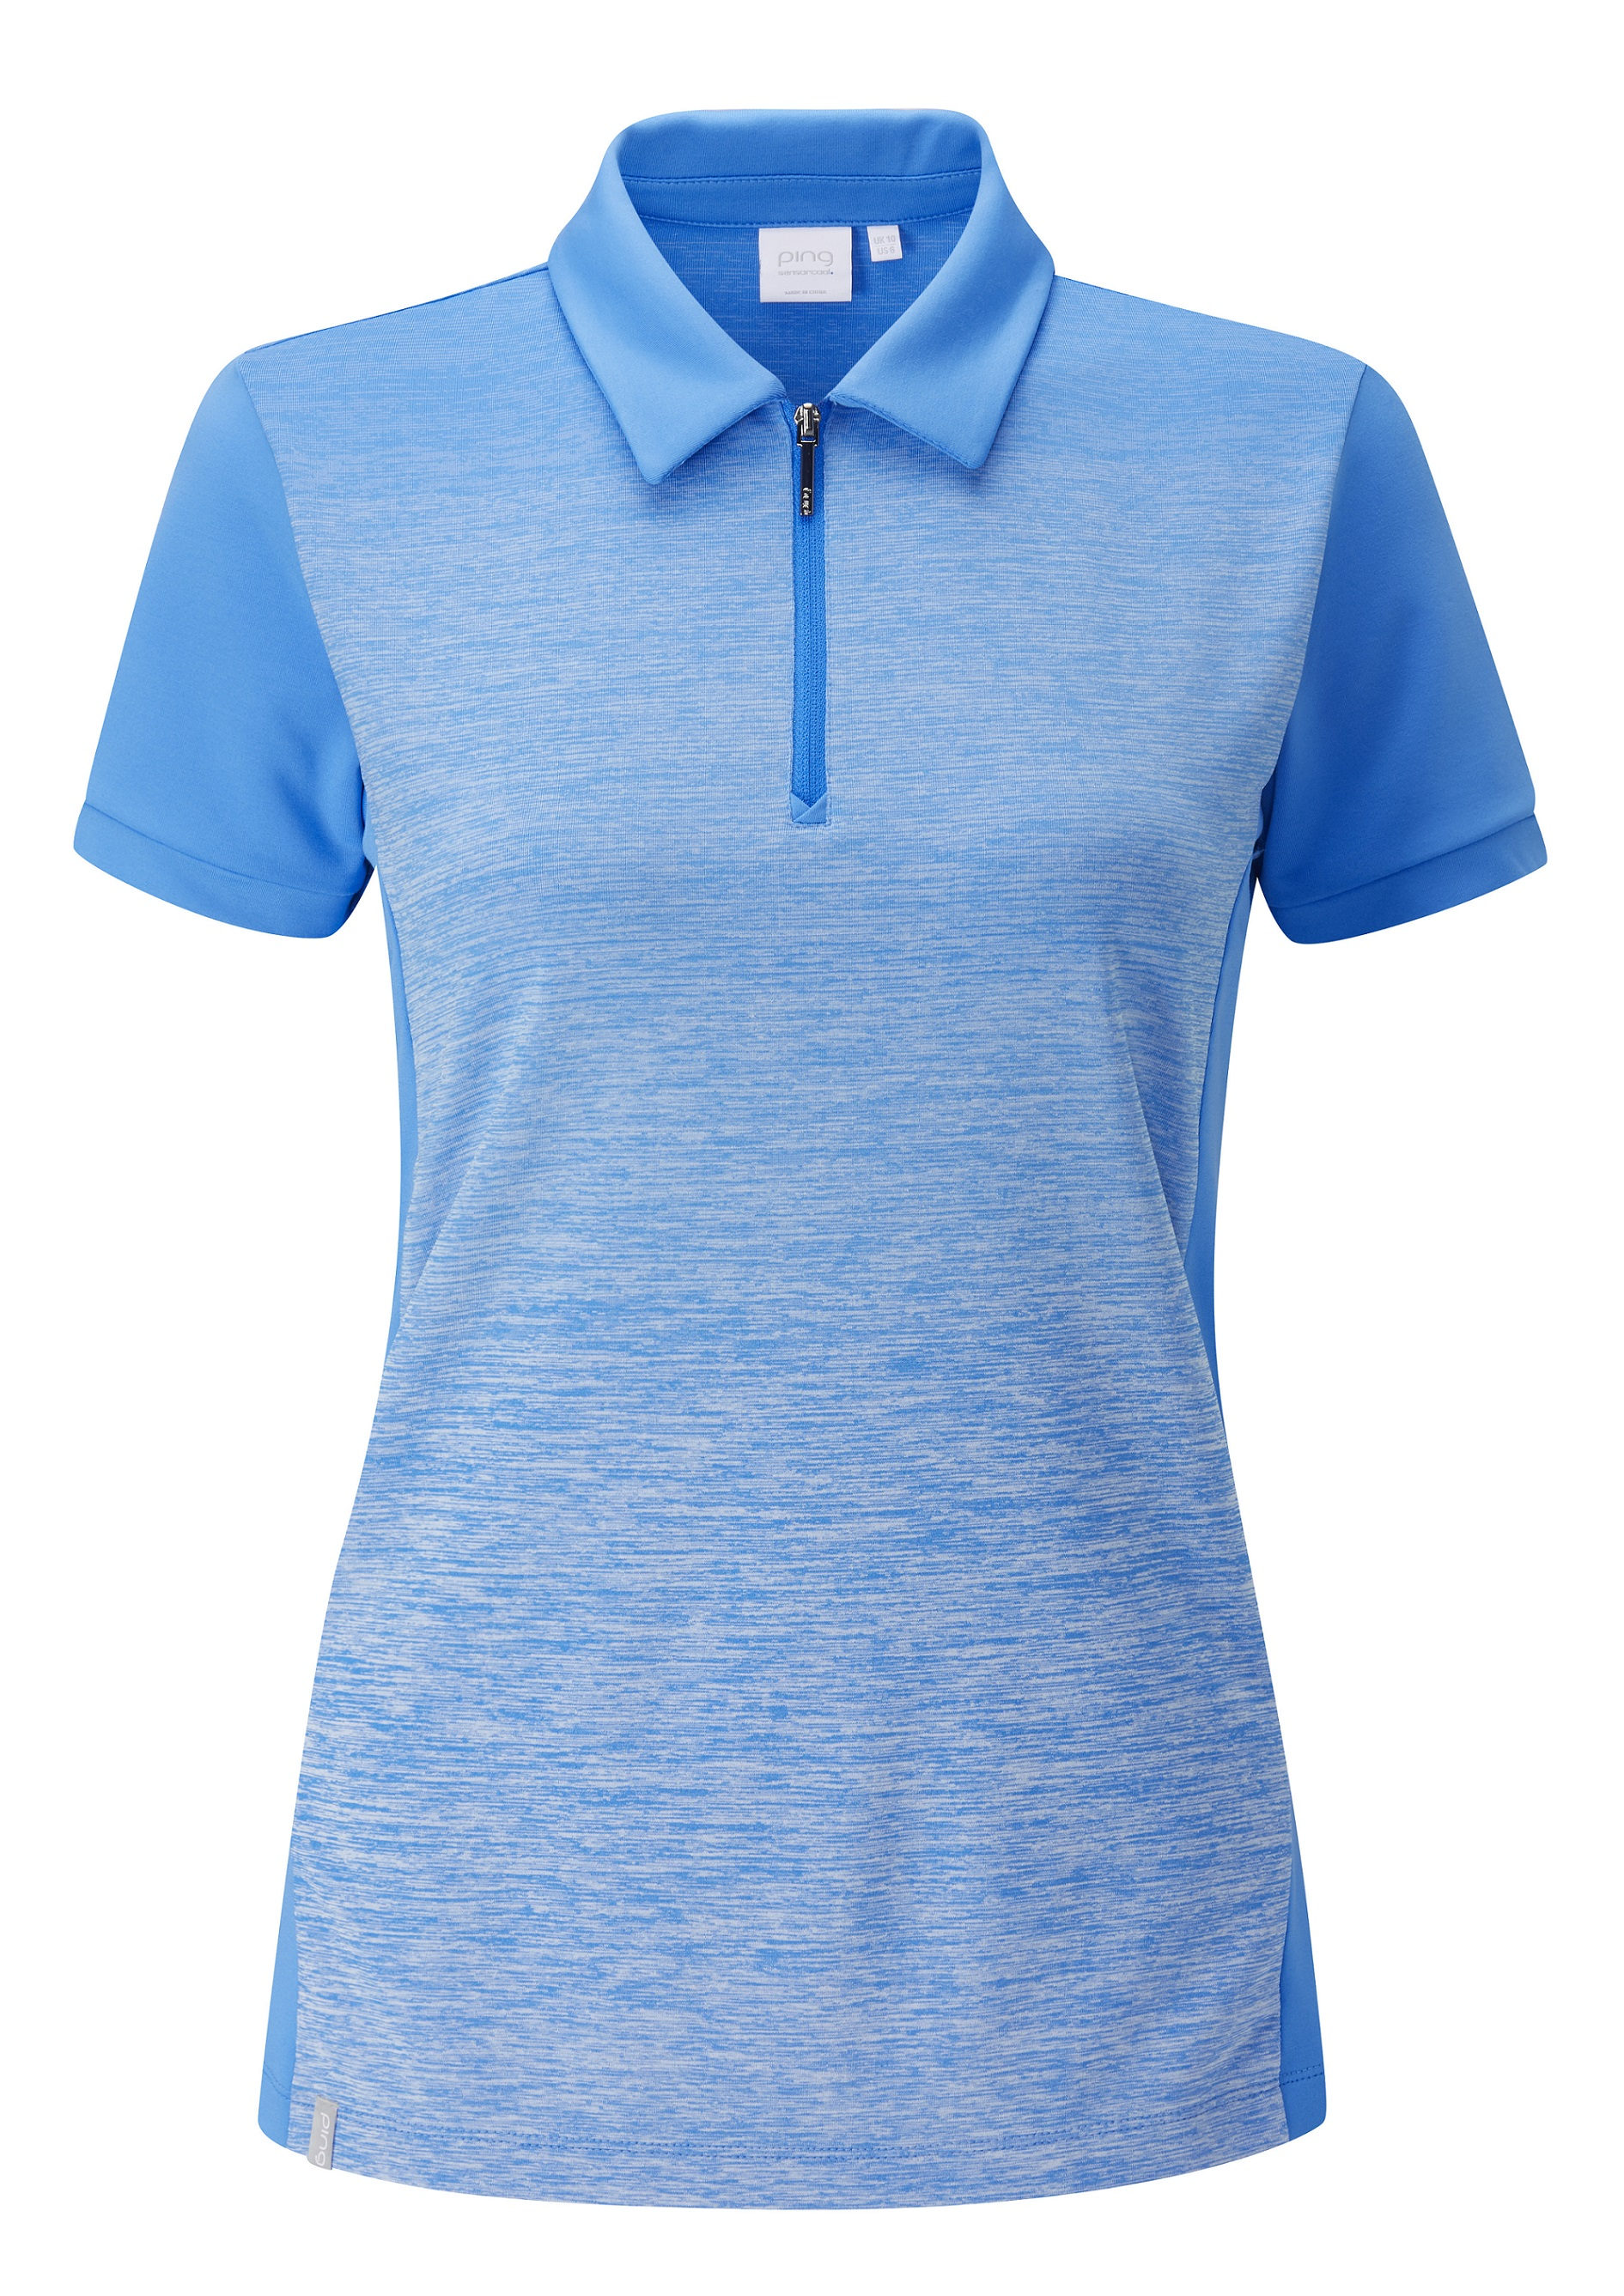 Svalkande vår/sommar-kollektioner från Ping - Dusk. Yarn-dyed gradient polo shirt with zip-neck opening. It features permanent moisture moving, quick drying and stretch properties. UPF 50+.